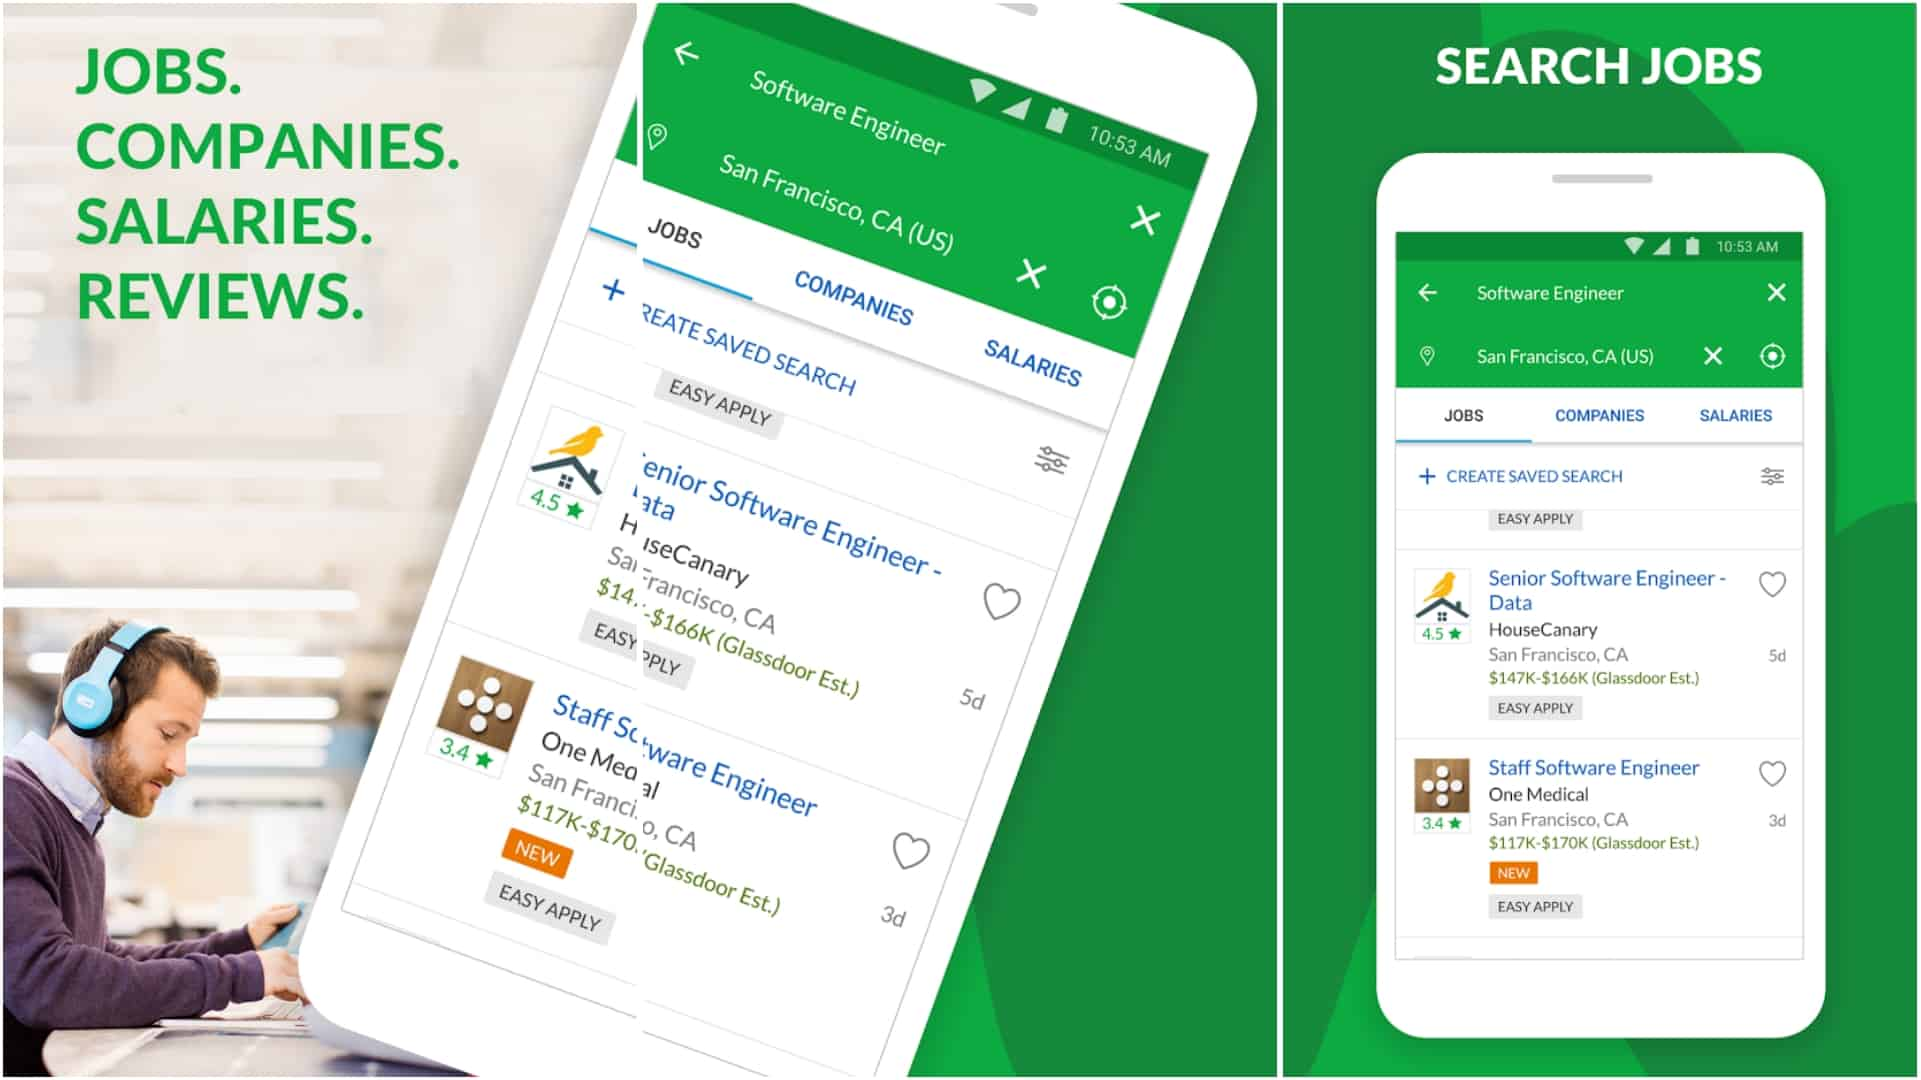 Glassdoor app image June 2020